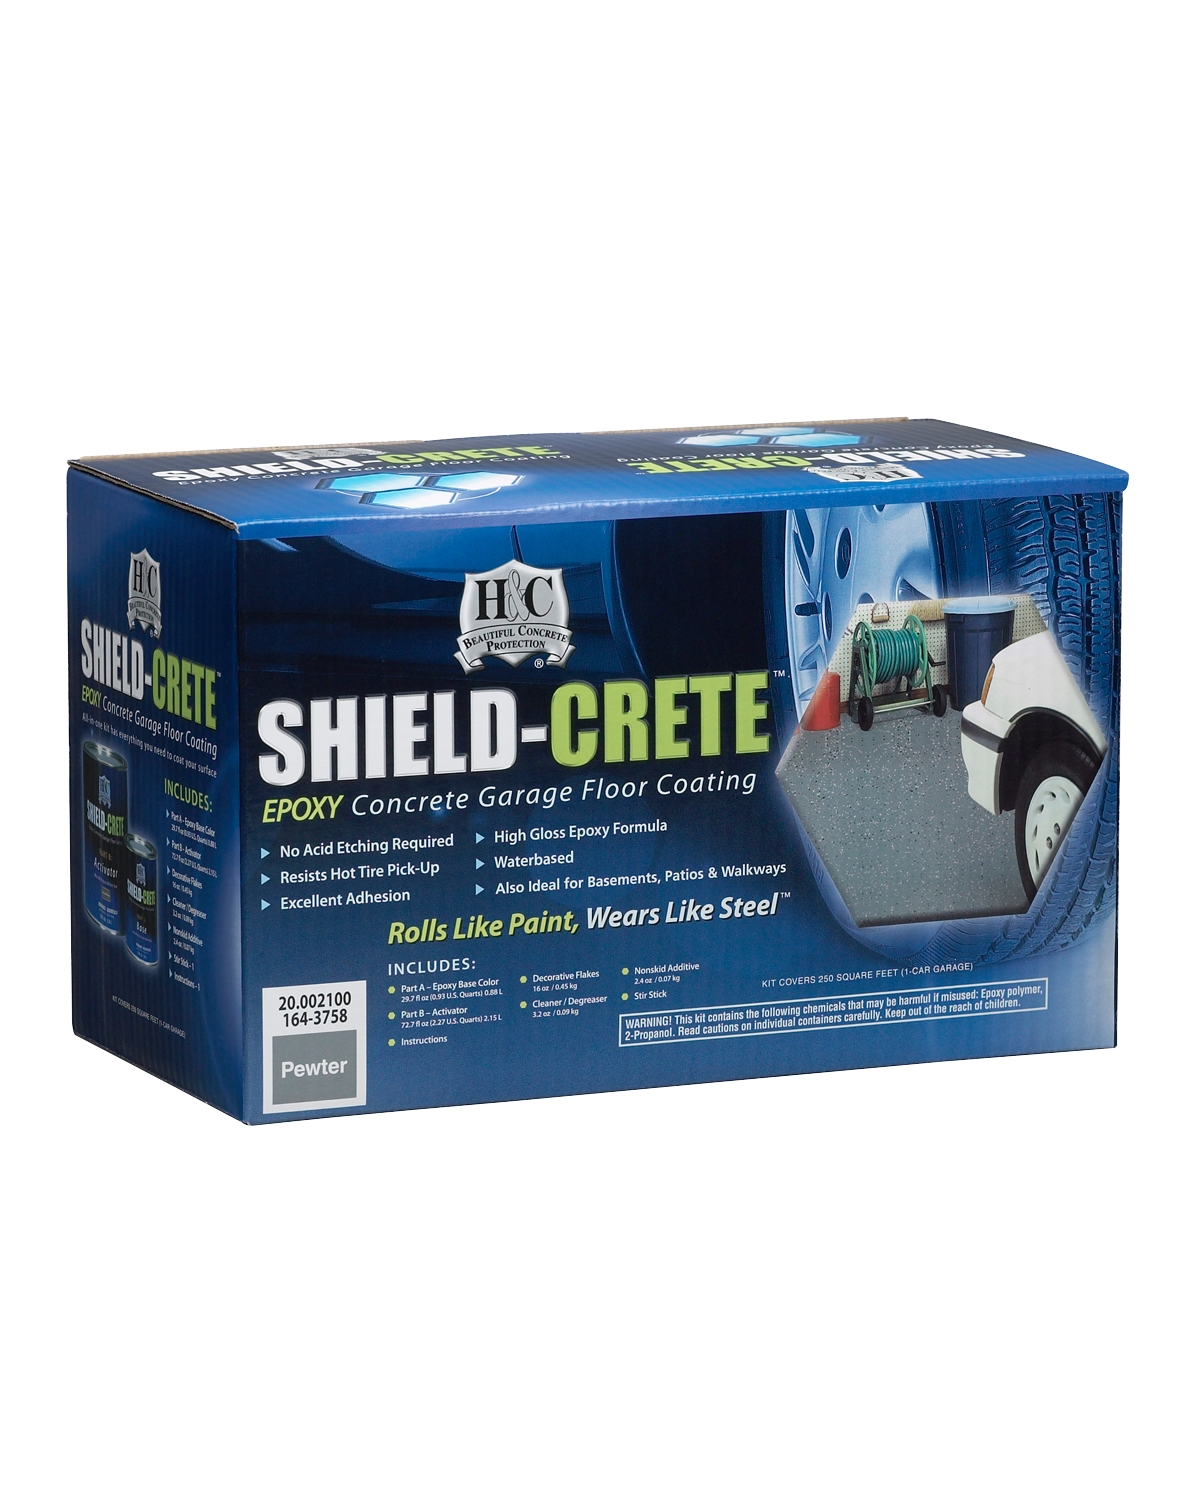 H&C® Shield-Crete® Epoxy Concrete Floor Coating